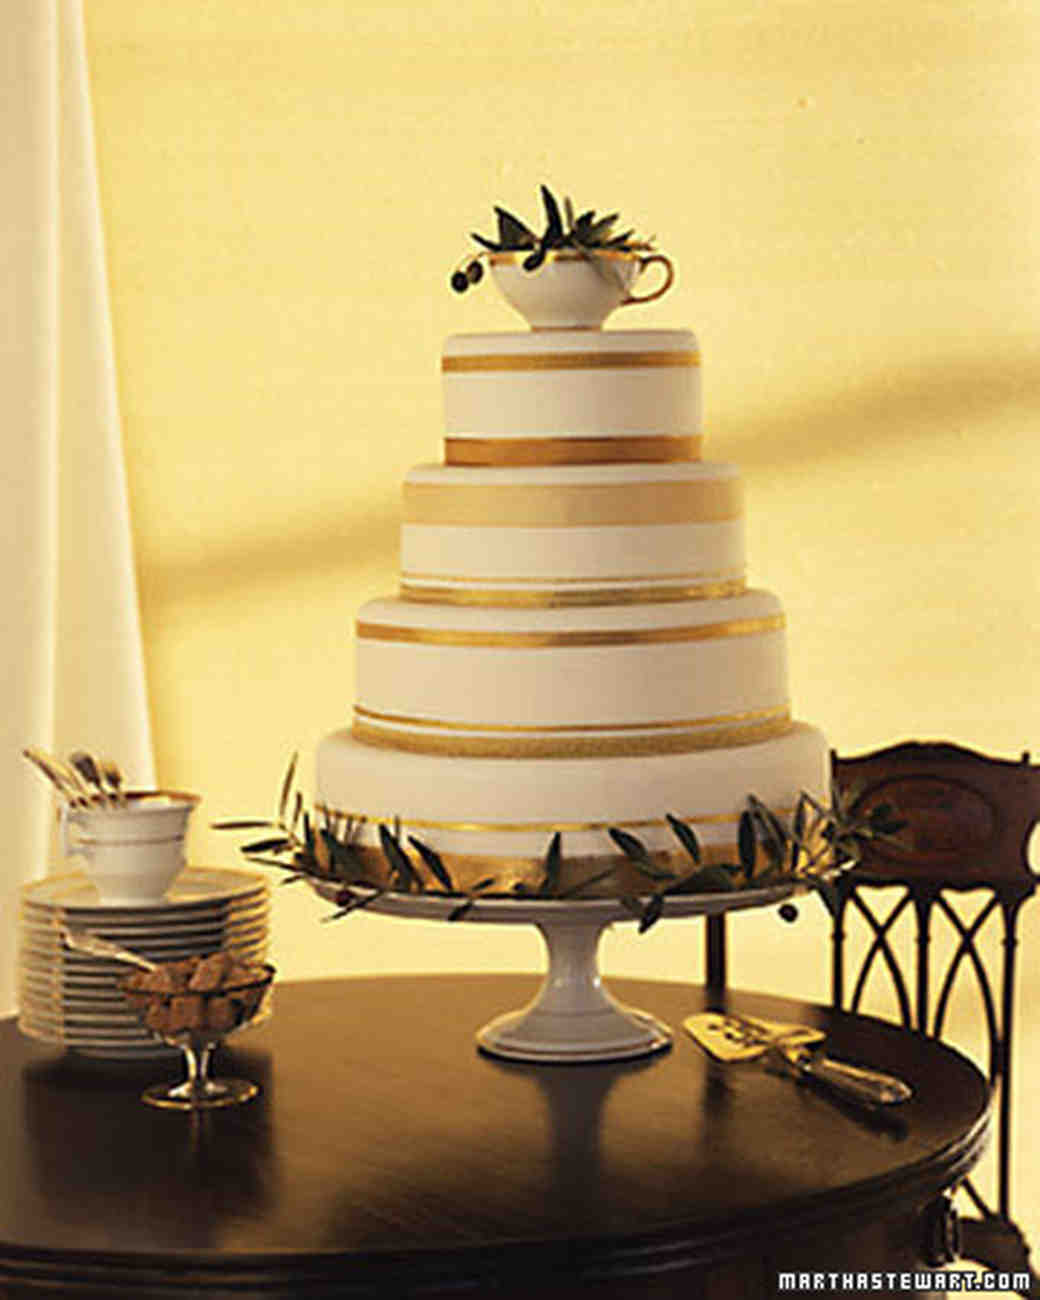 Wedding Cakes Inspired by China Patterns | Martha Stewart Weddings